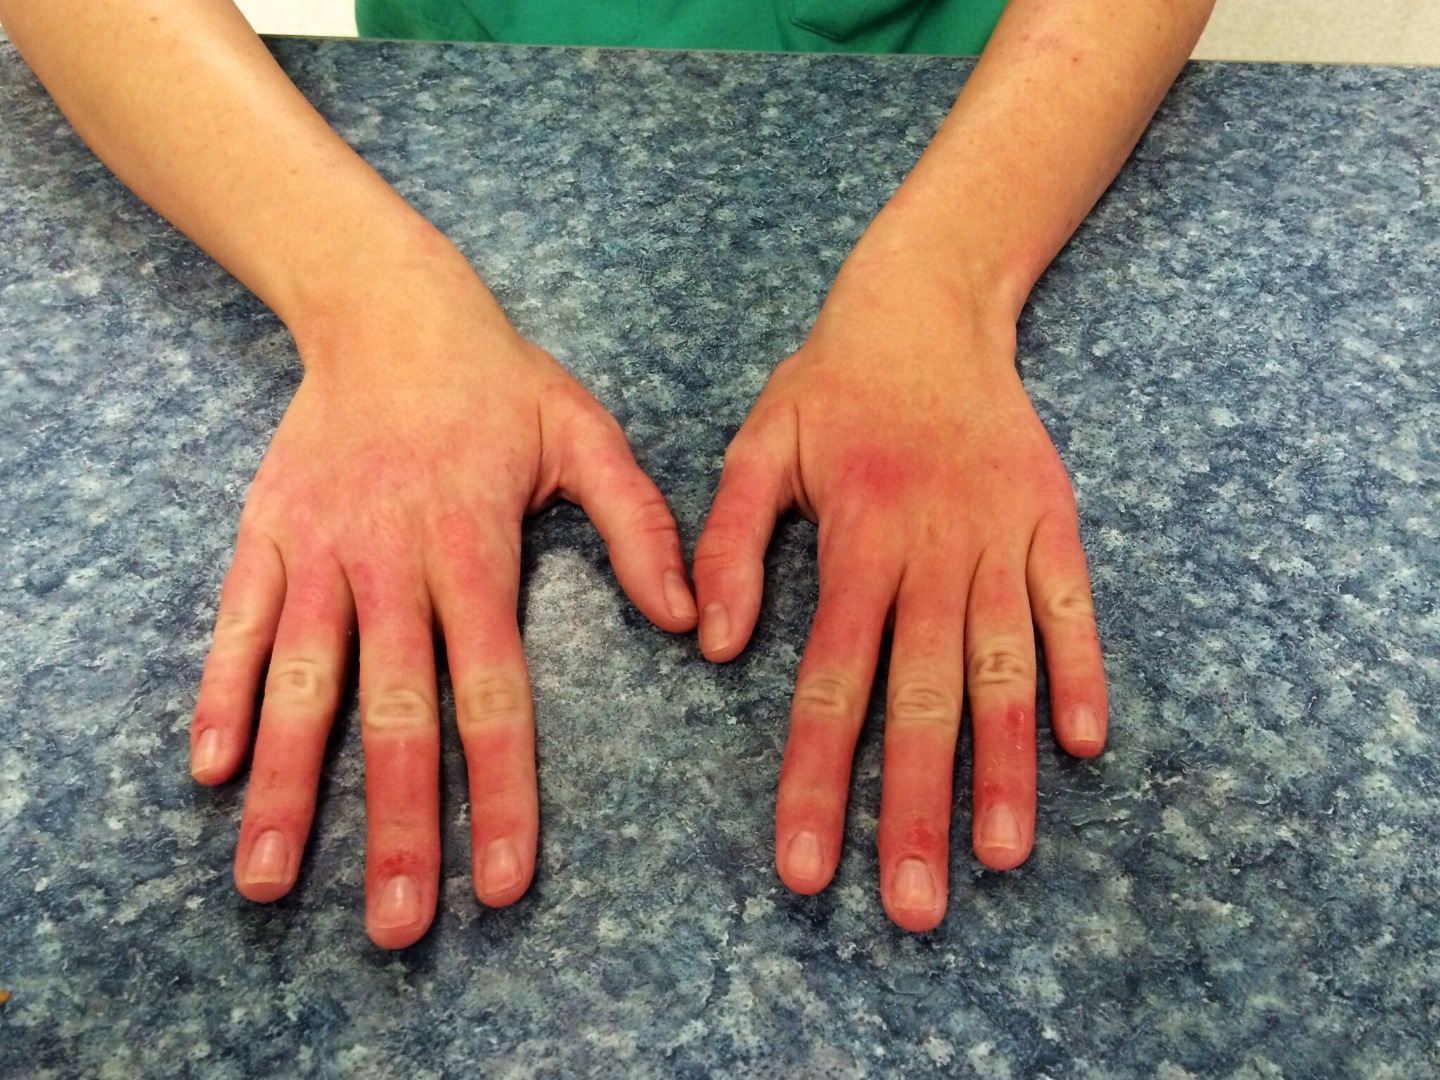 Red, swollen fingers. One year and no diagnosis. - Skin ...